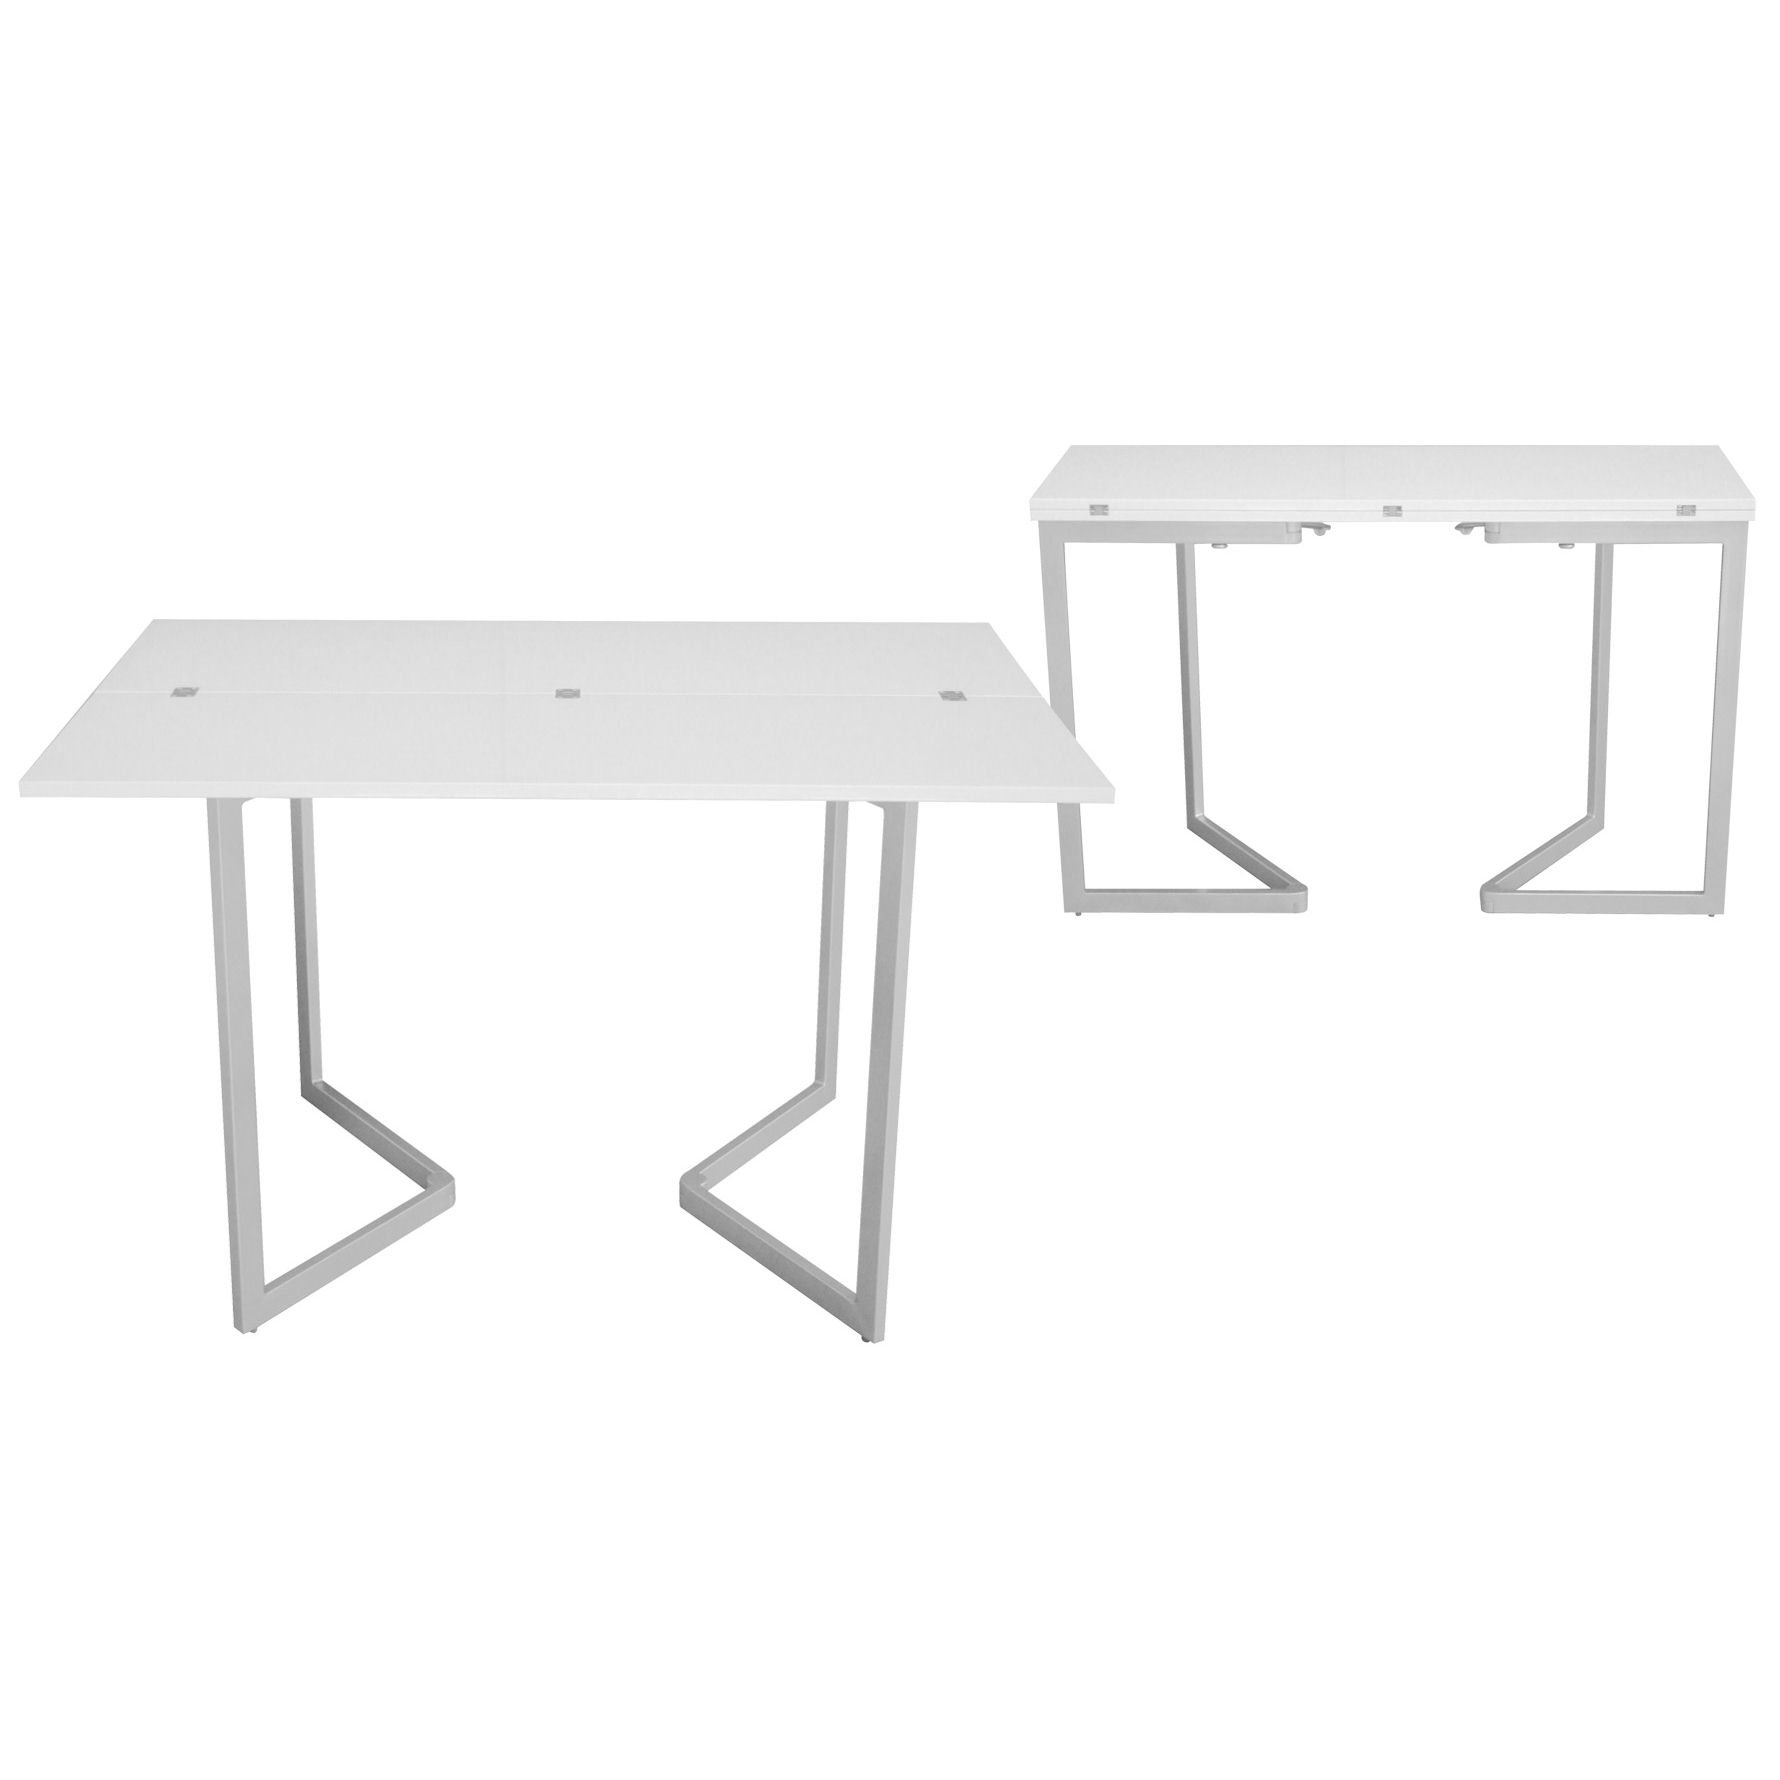 Deco in paris table console extensible blanche laquee for Table blanche extensible